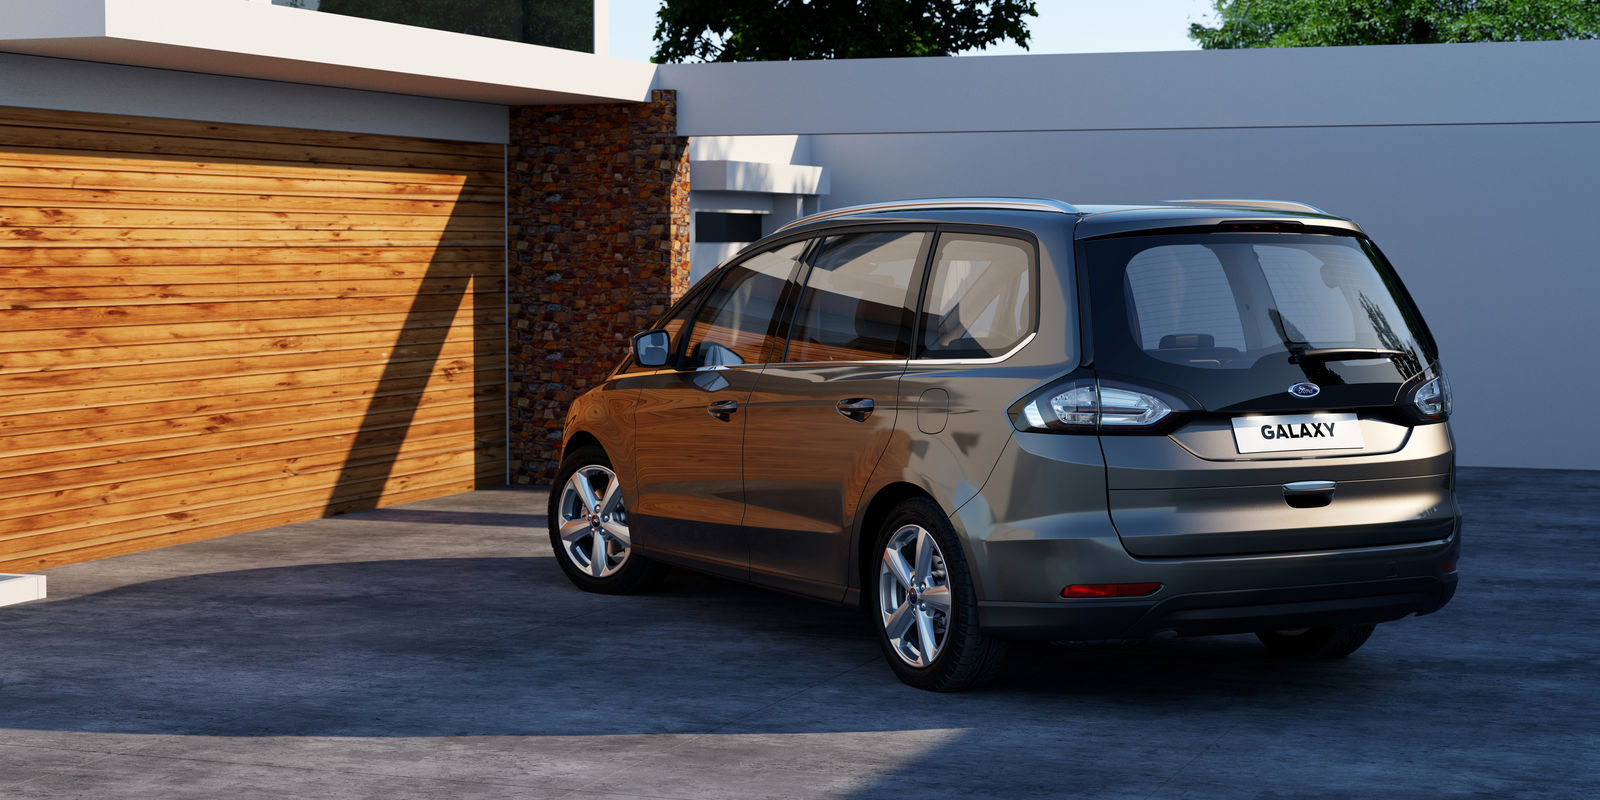 ford galaxy size and dimensions guide carwow. Black Bedroom Furniture Sets. Home Design Ideas